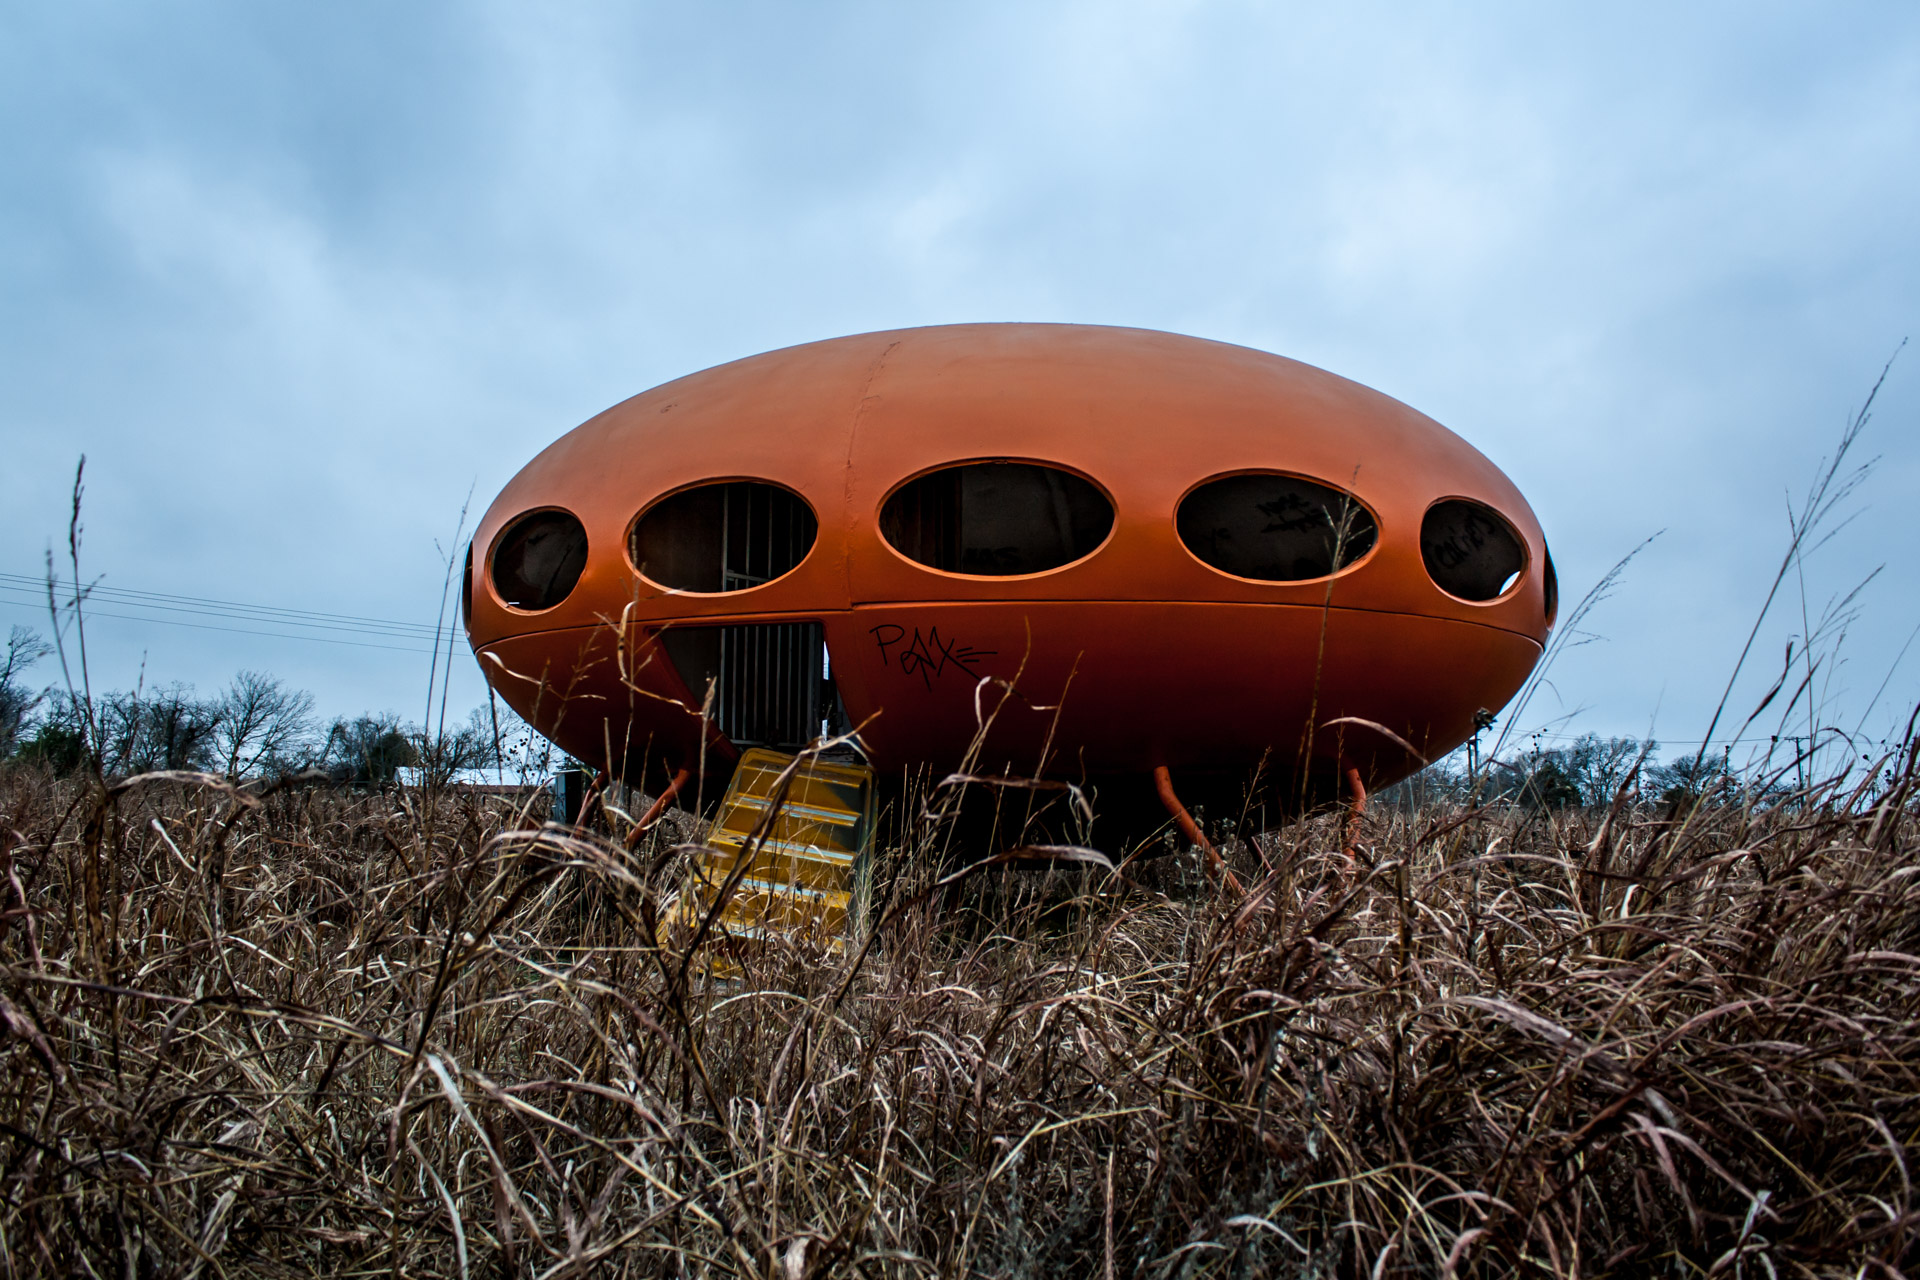 Royse City, Texas - The Orange Futuro House